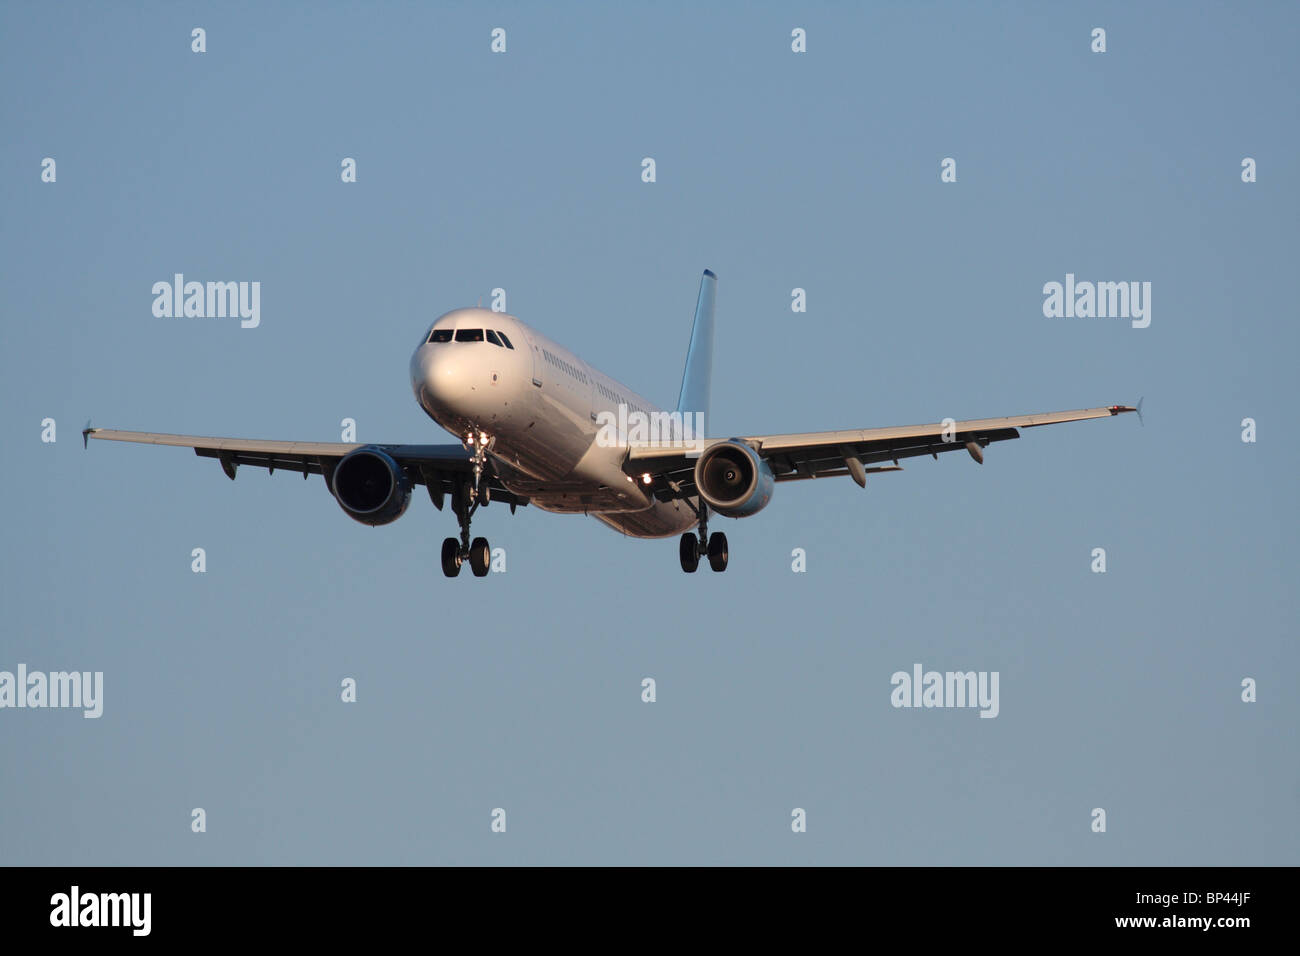 Commercial air travel. Airbus A321 narrowbody passenger jet plane flying on approach in a blue sky. Front view with - Stock Image